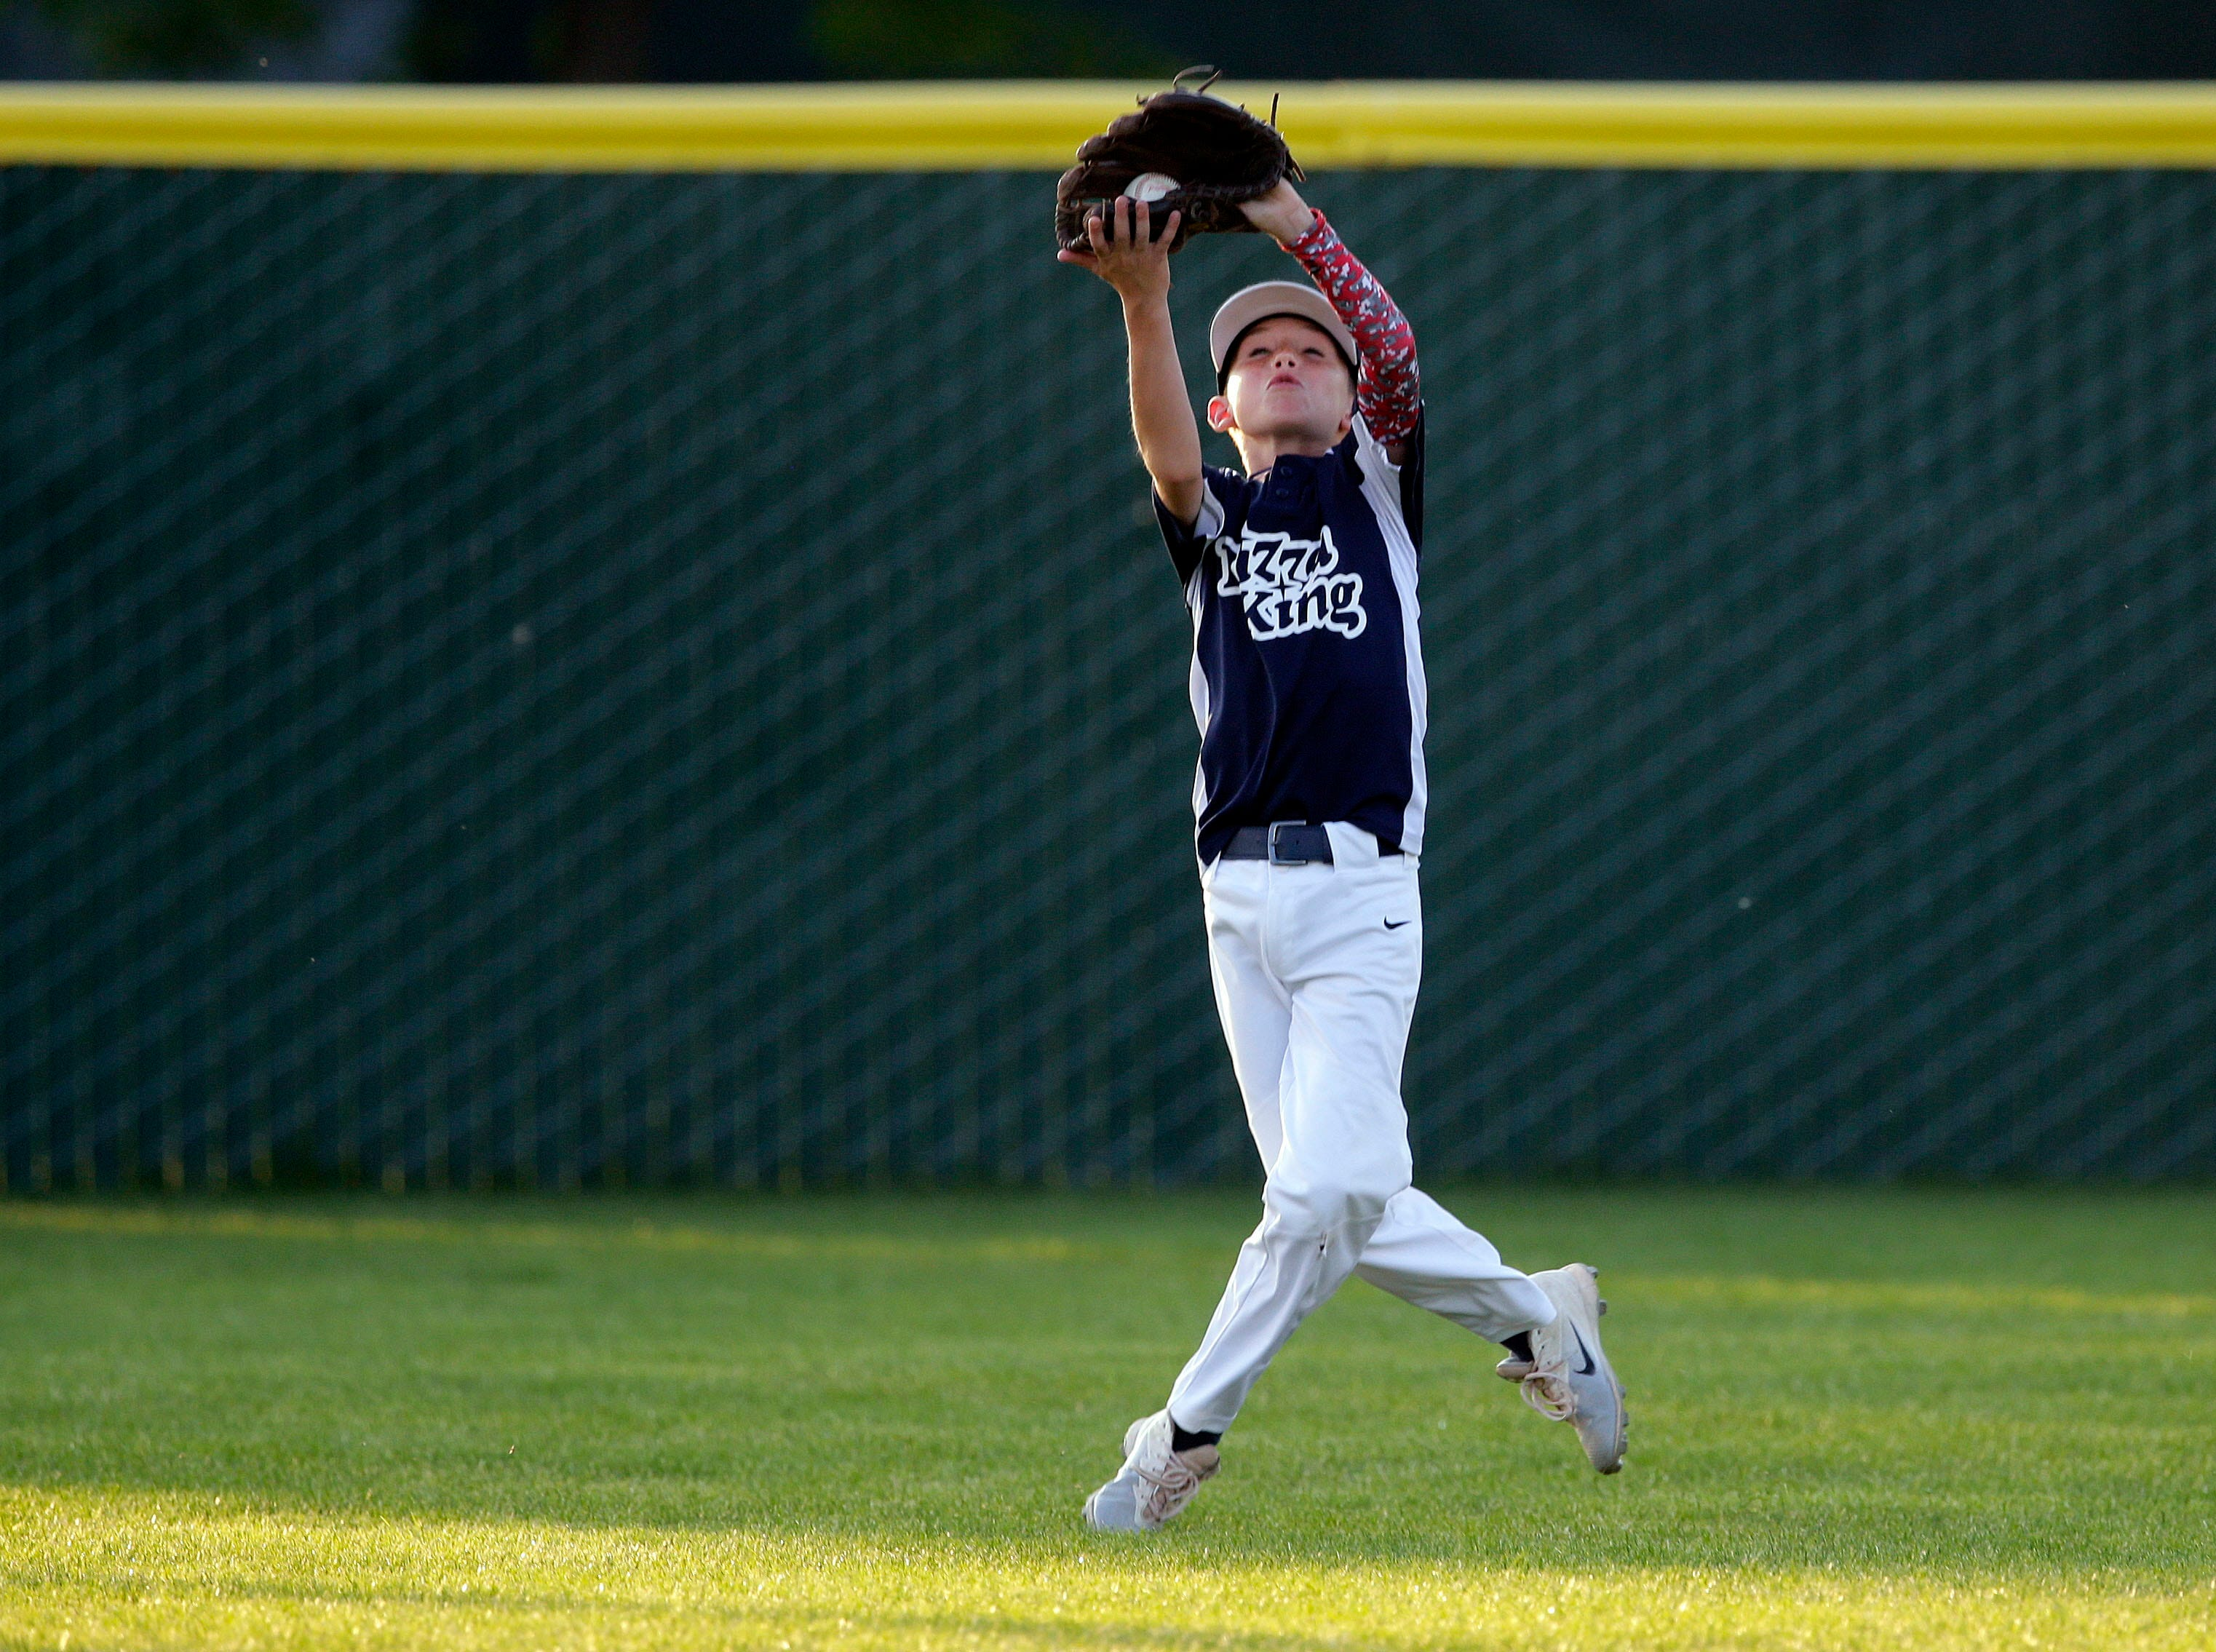 Eli Vezina of Pizza King makes a catch in the outfield as the Appleton Little League baseball and softball championship games take place Wednesday, June 27, 2018, at Scheels USA Sports Complex in Appleton, Wis.